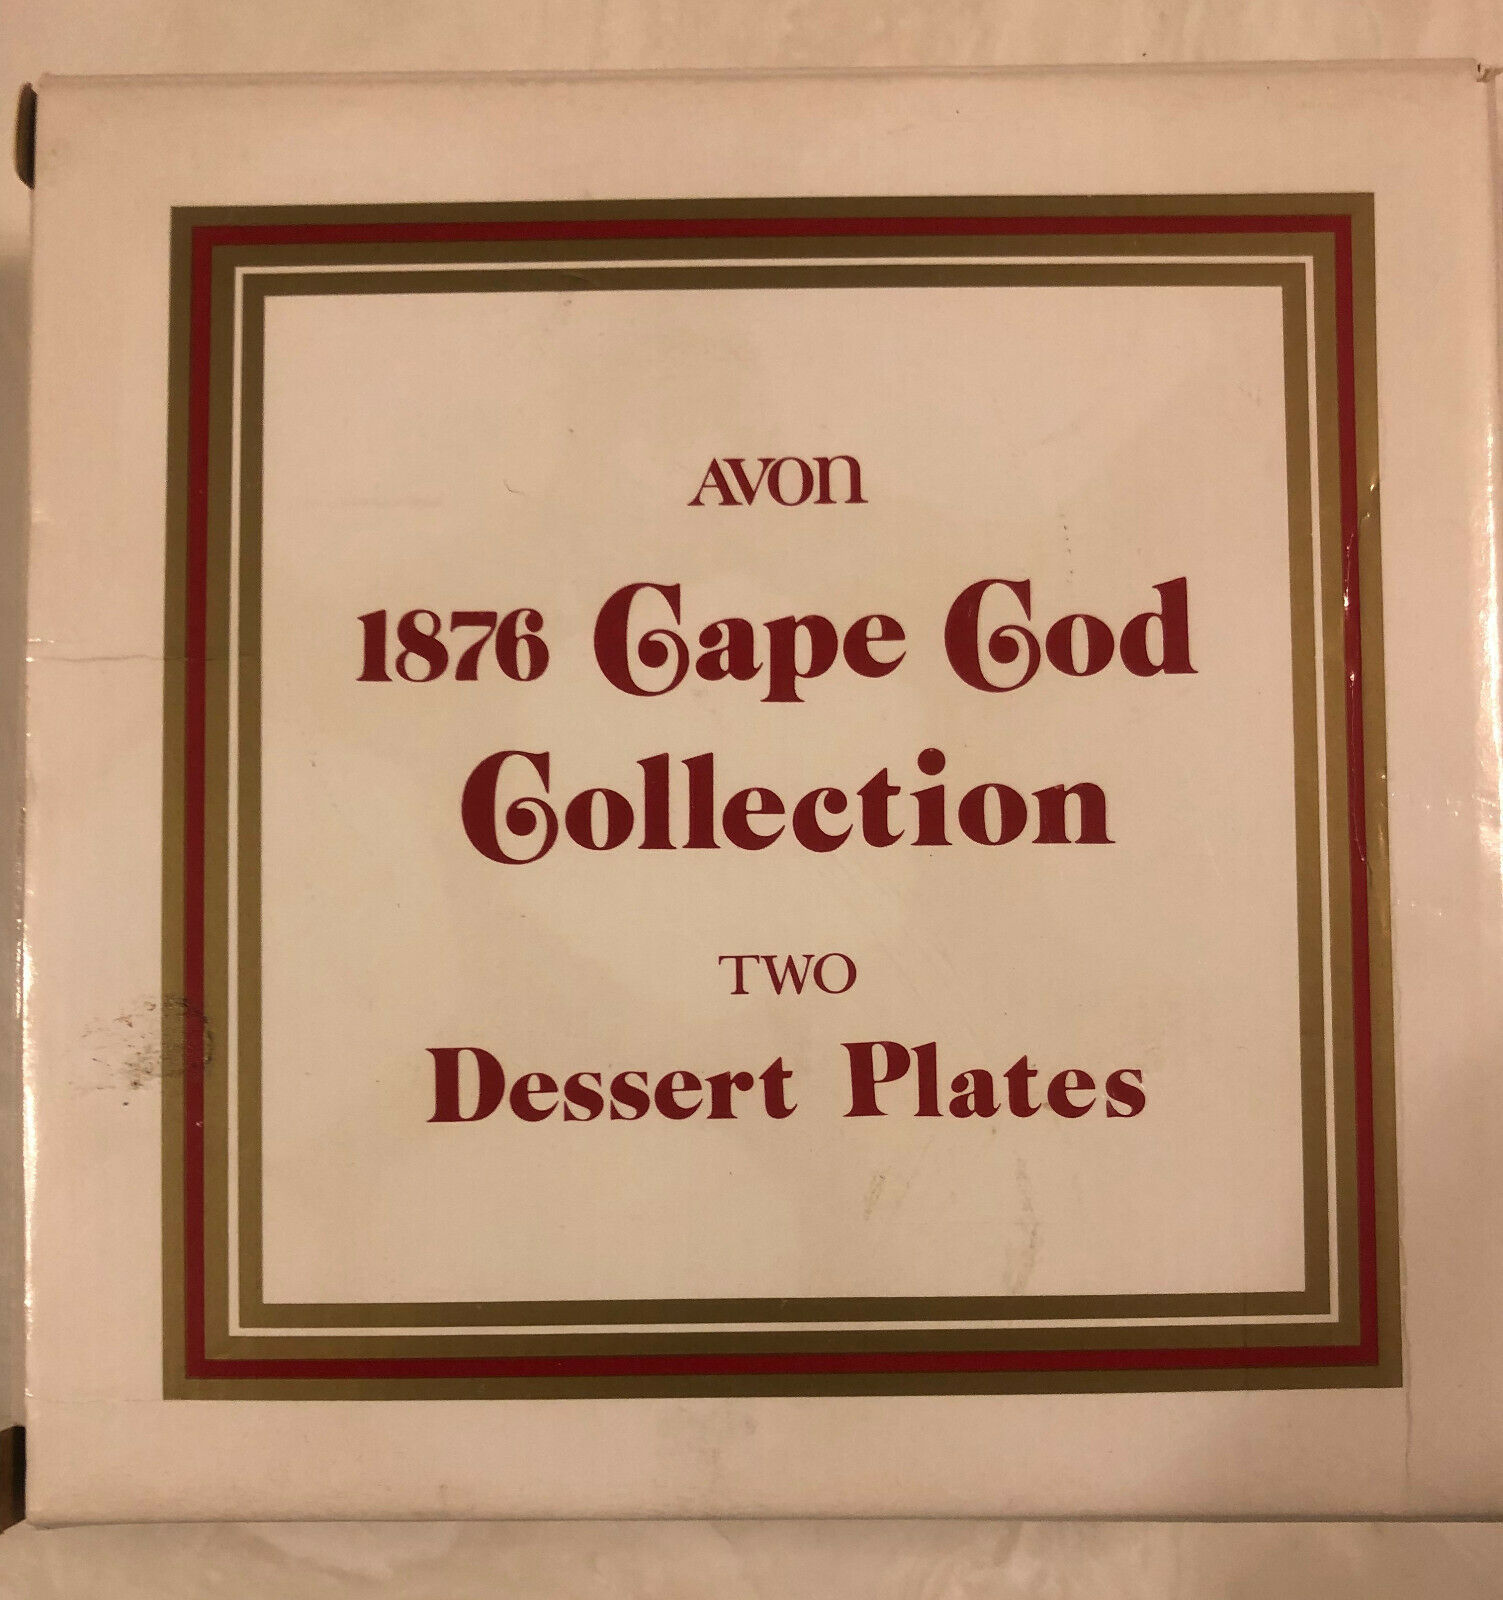 Vintage 1876 Cape Cod Collection / Two Dessert Plates / Ruby Red / Avon